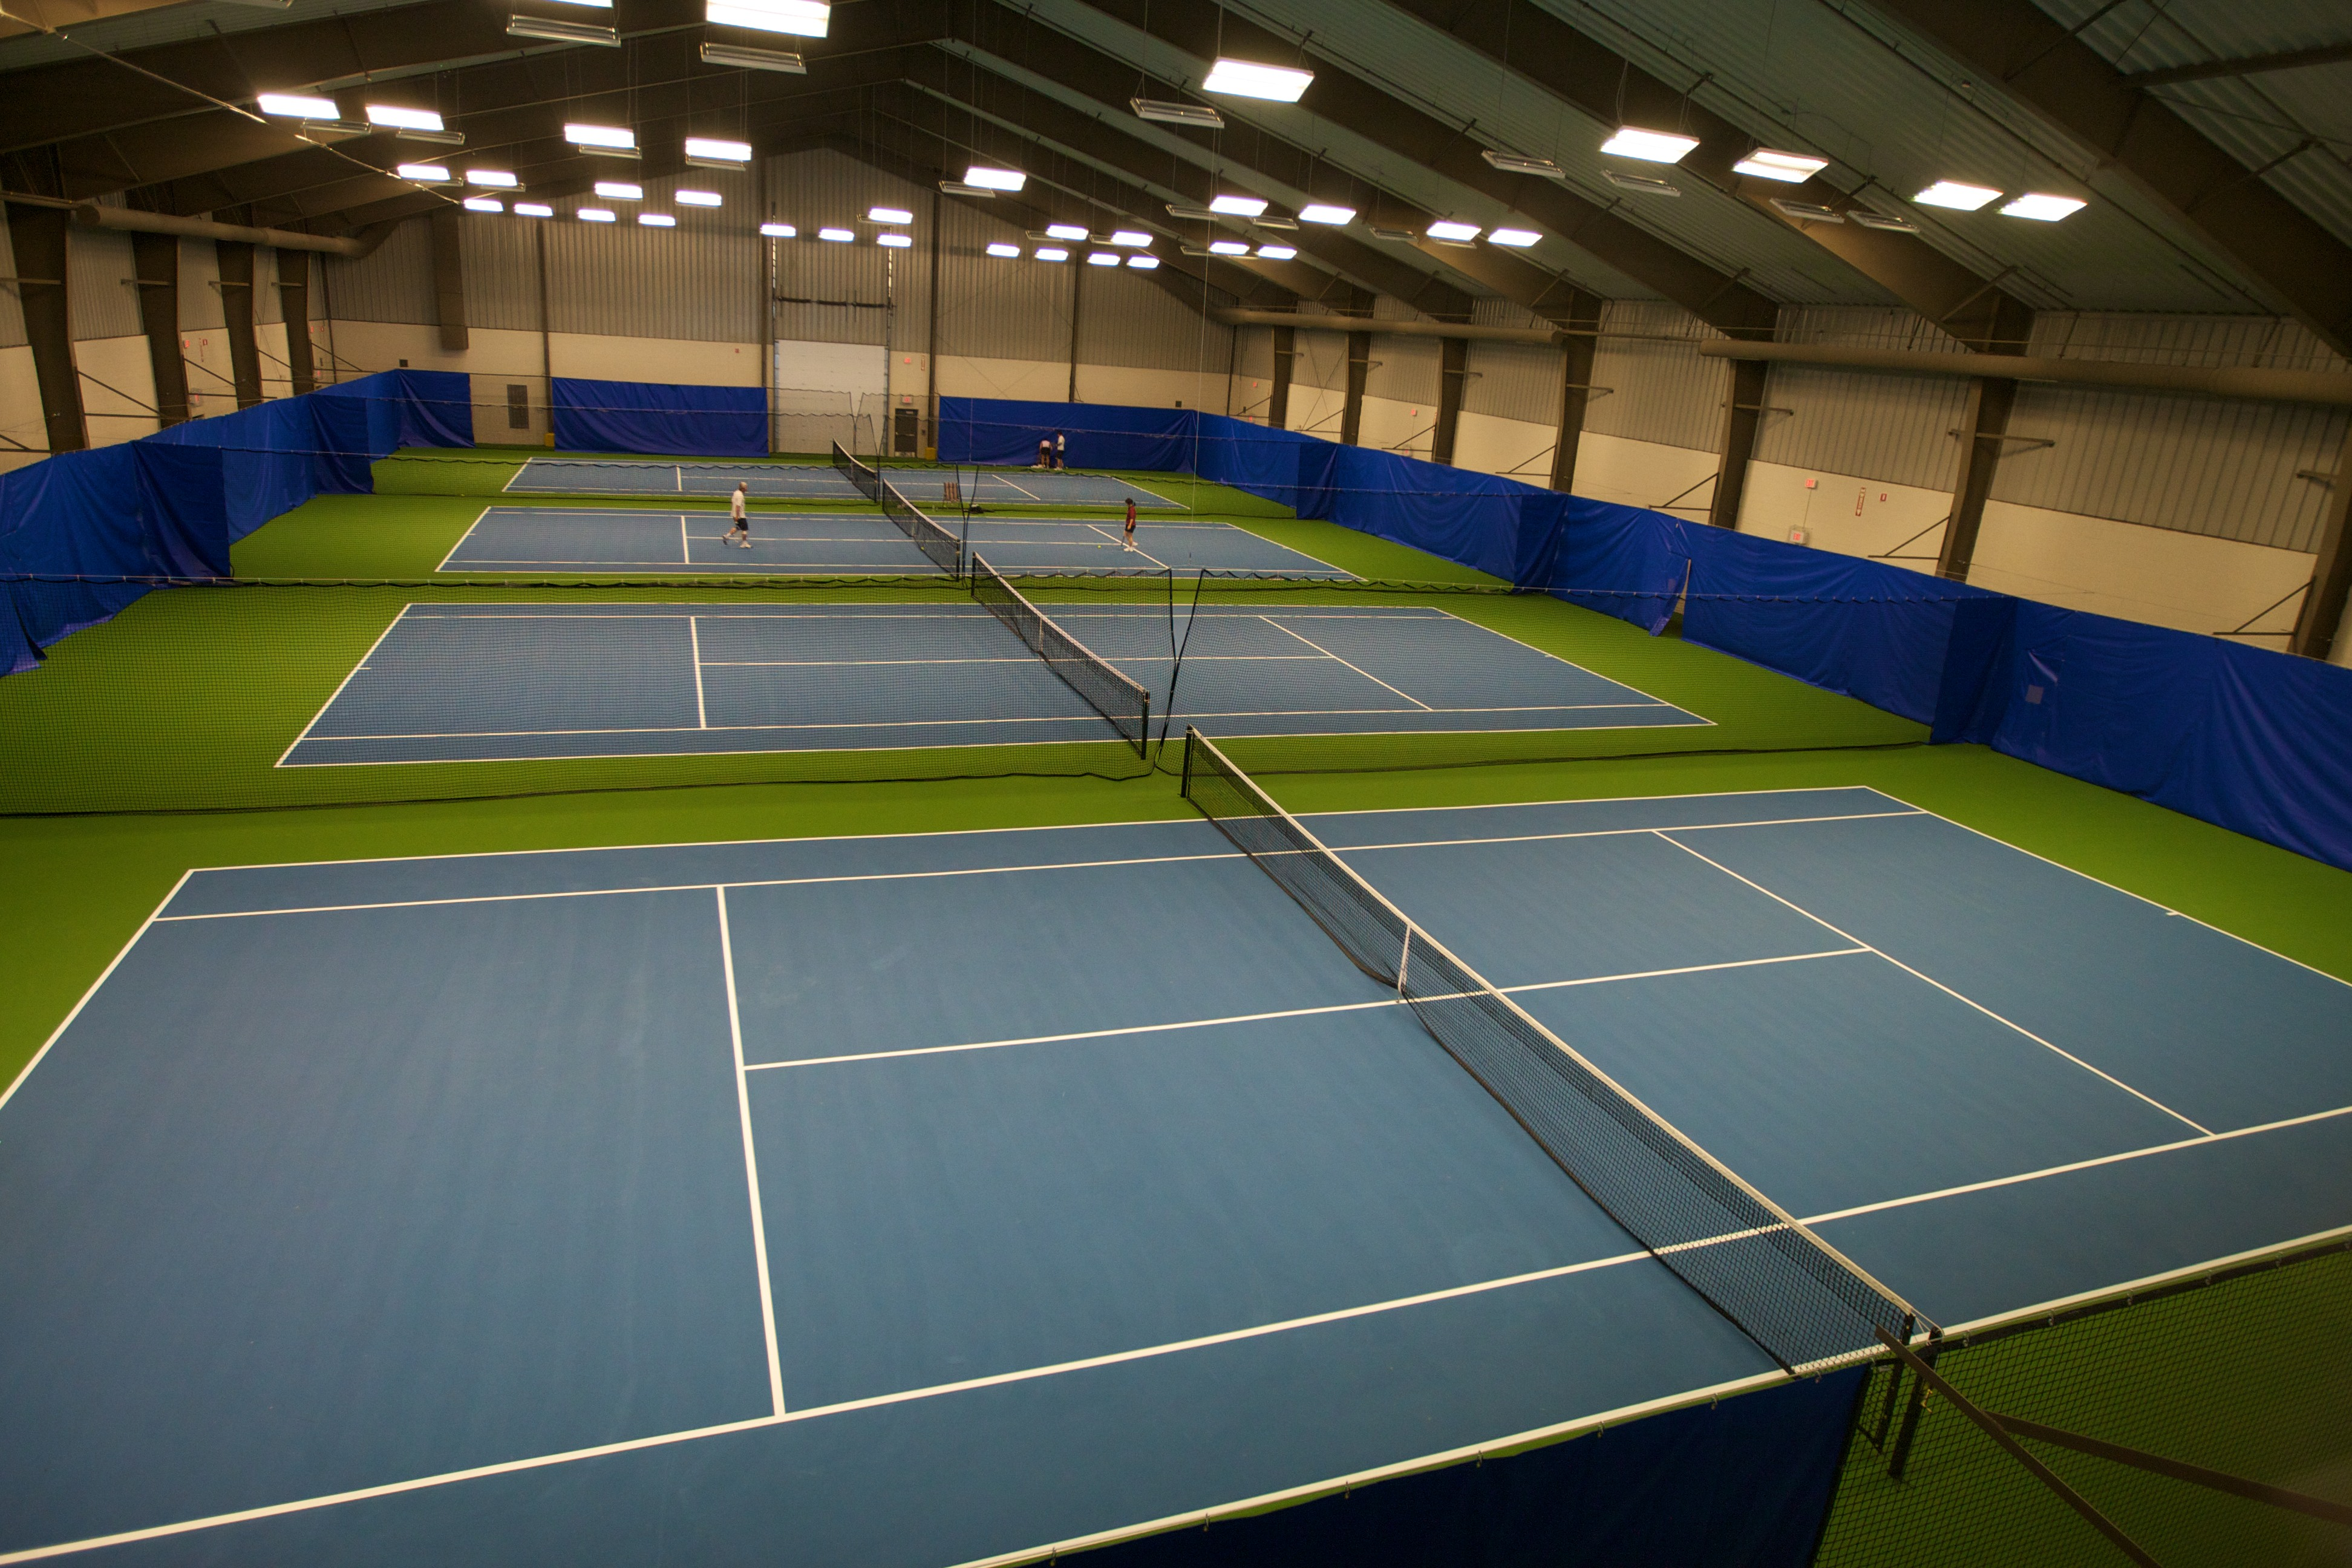 Angus Glen Tennis Center